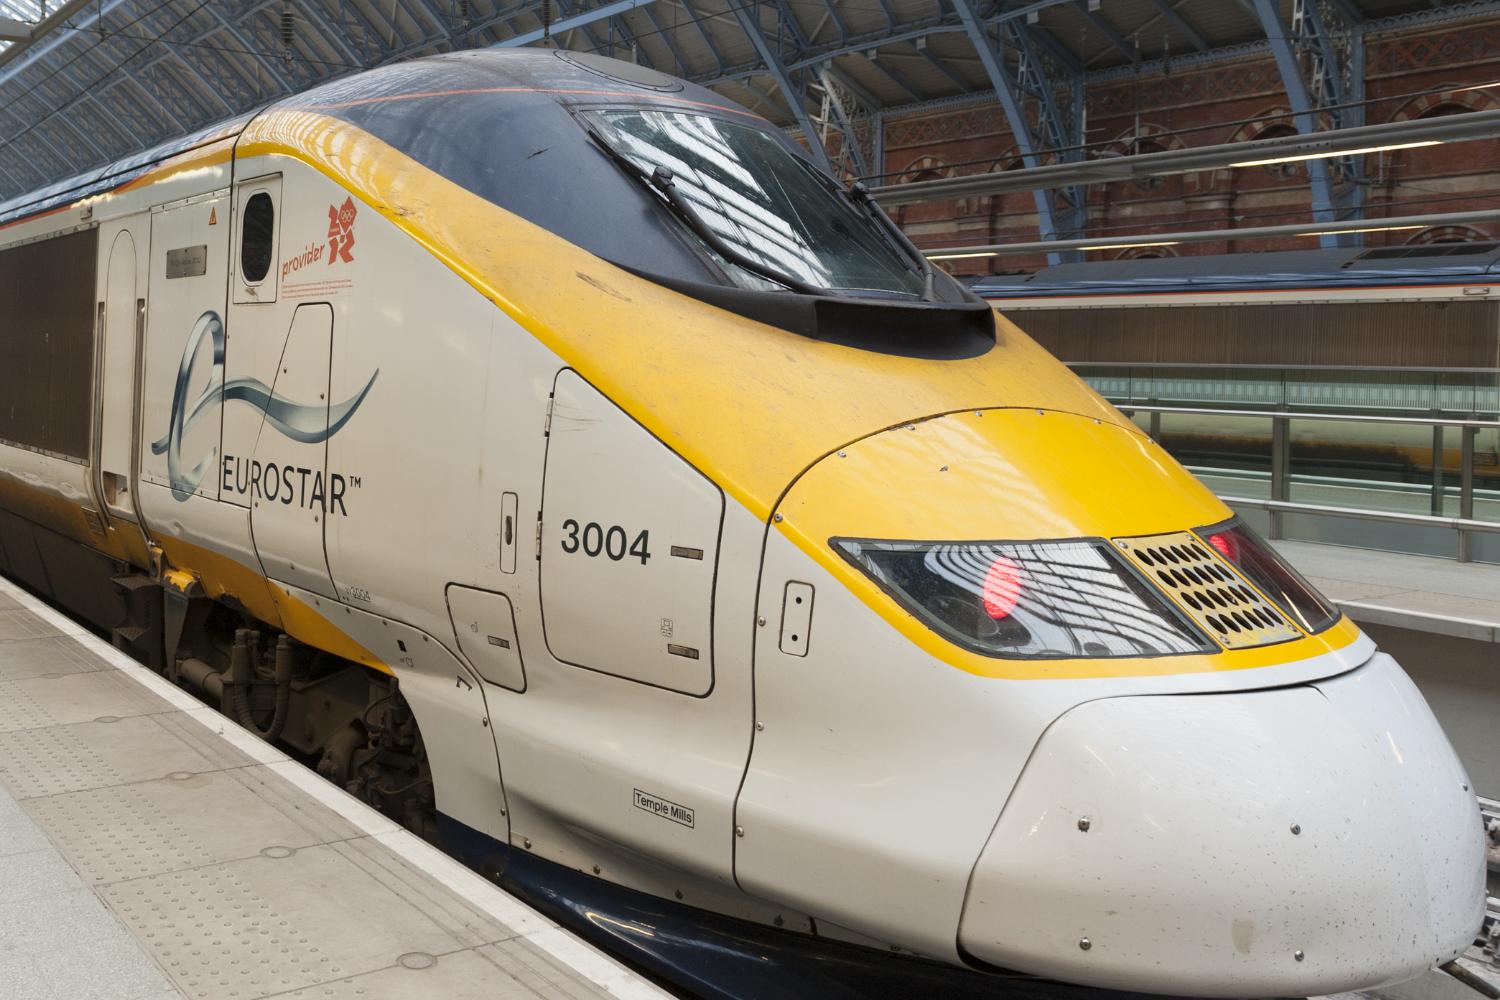 Direct Amsterdam-London service will launch in October, Eurostar confirms